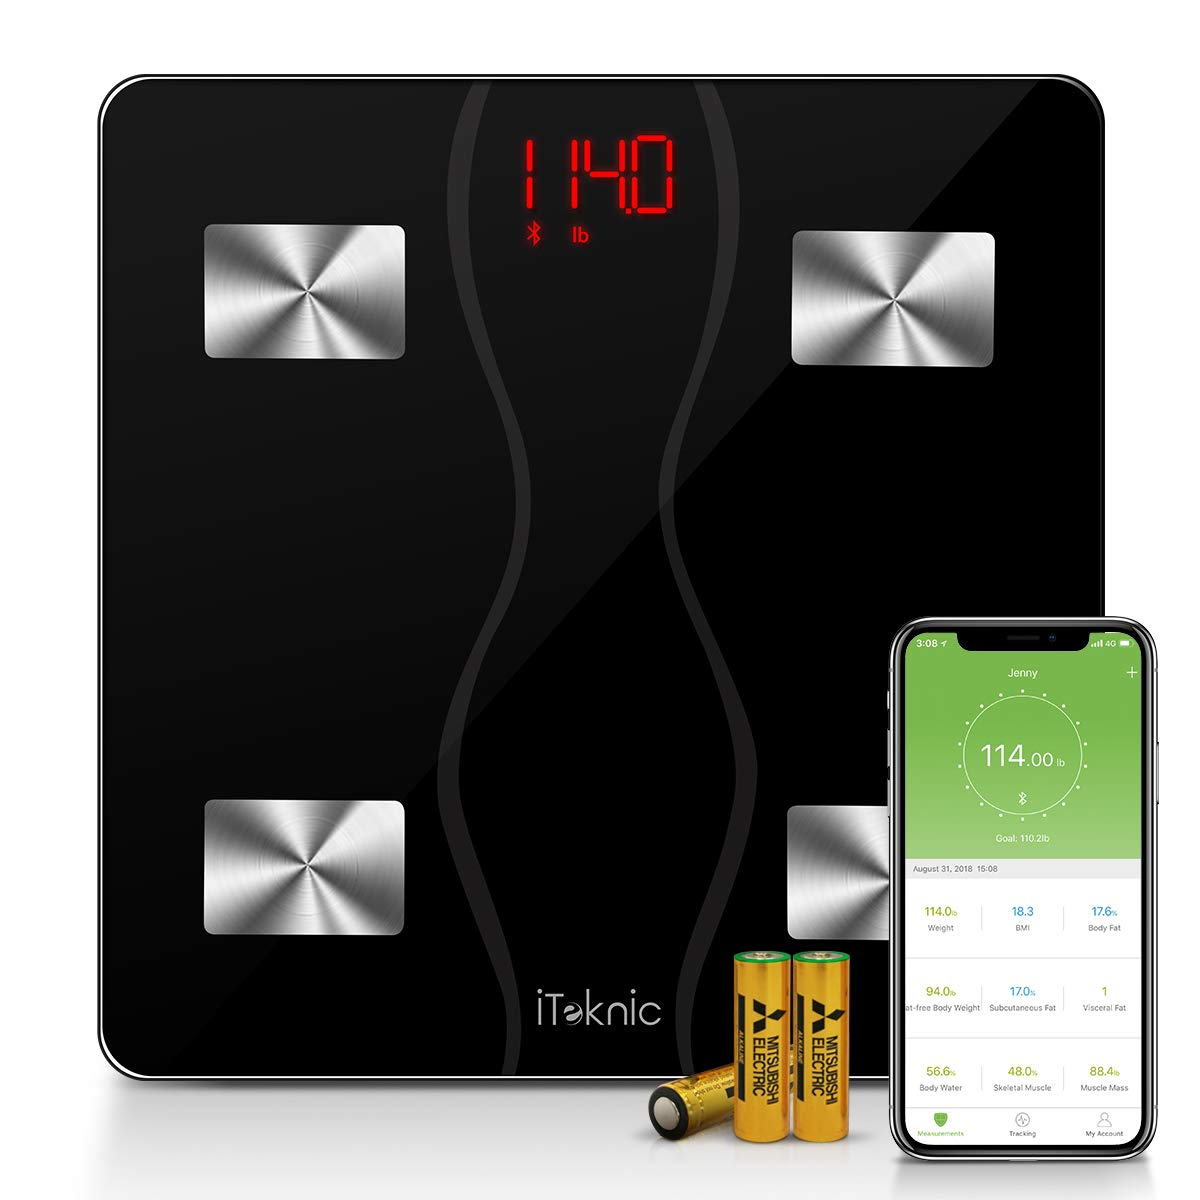 Bluetooth Body Fat Scale, iTeknic Smart Wireless Digital Bathroom Weight Scale Body Composition Analyzer with Smartphone App for Body Weight, Fat, Water, BMI, BMR, Muscle Mass 400lb, Black by iTeknic